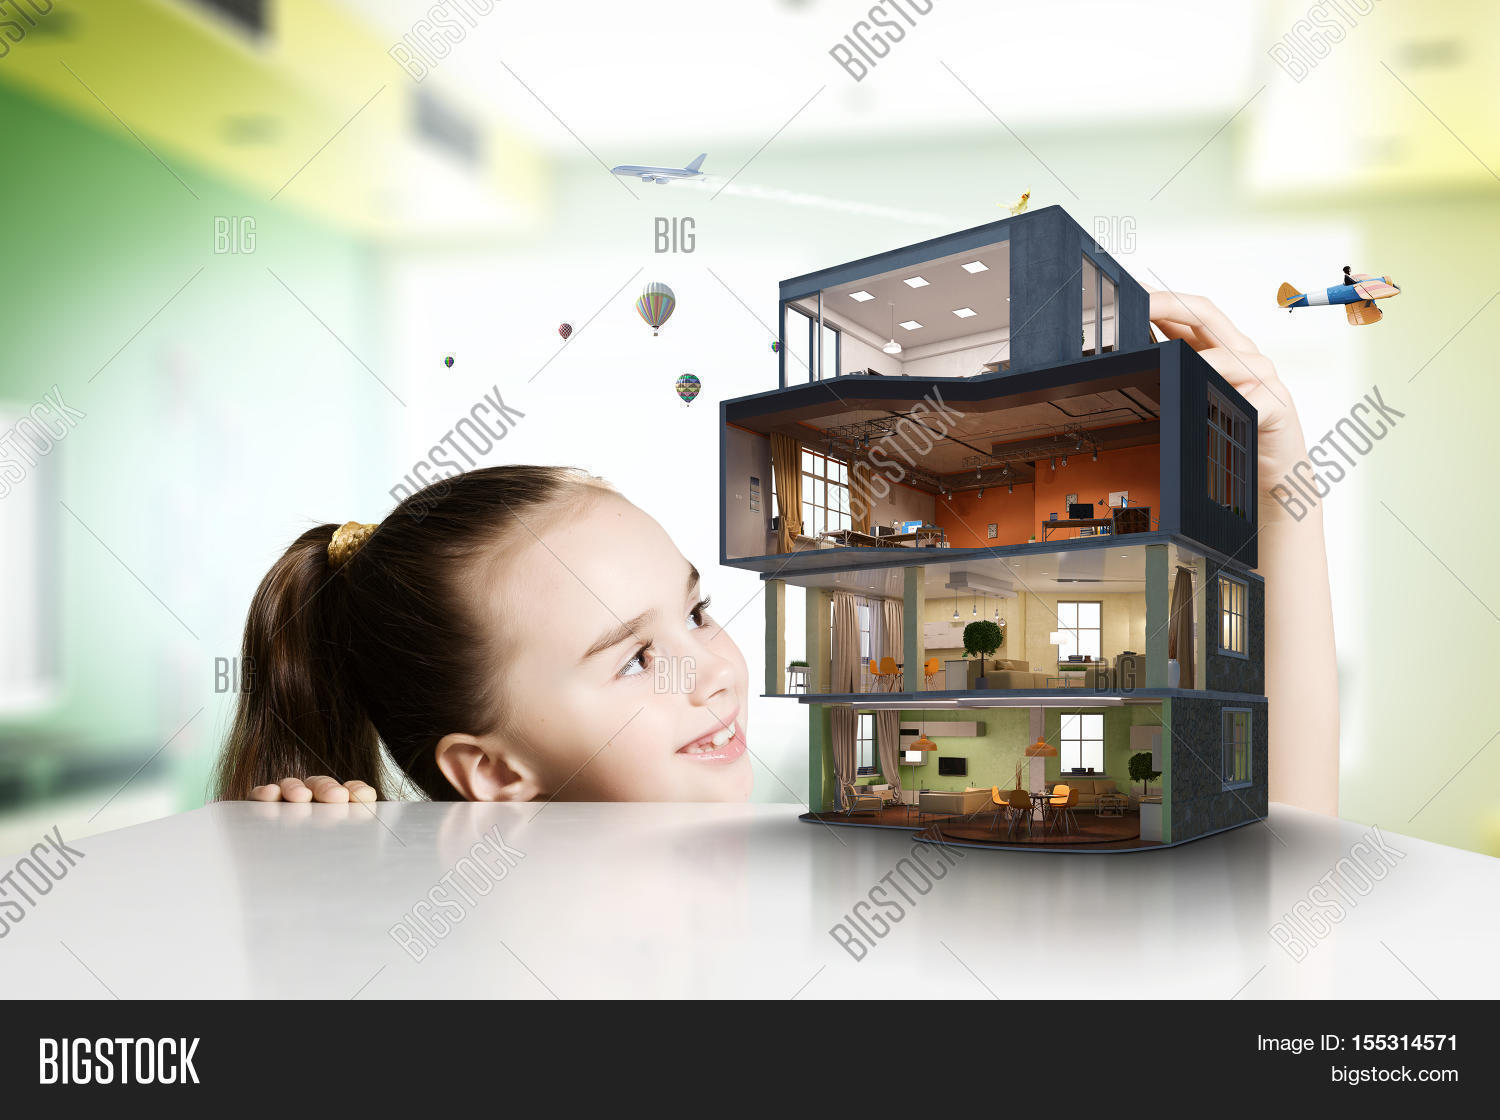 Design your dream house mixed image photo bigstock for Dream roof